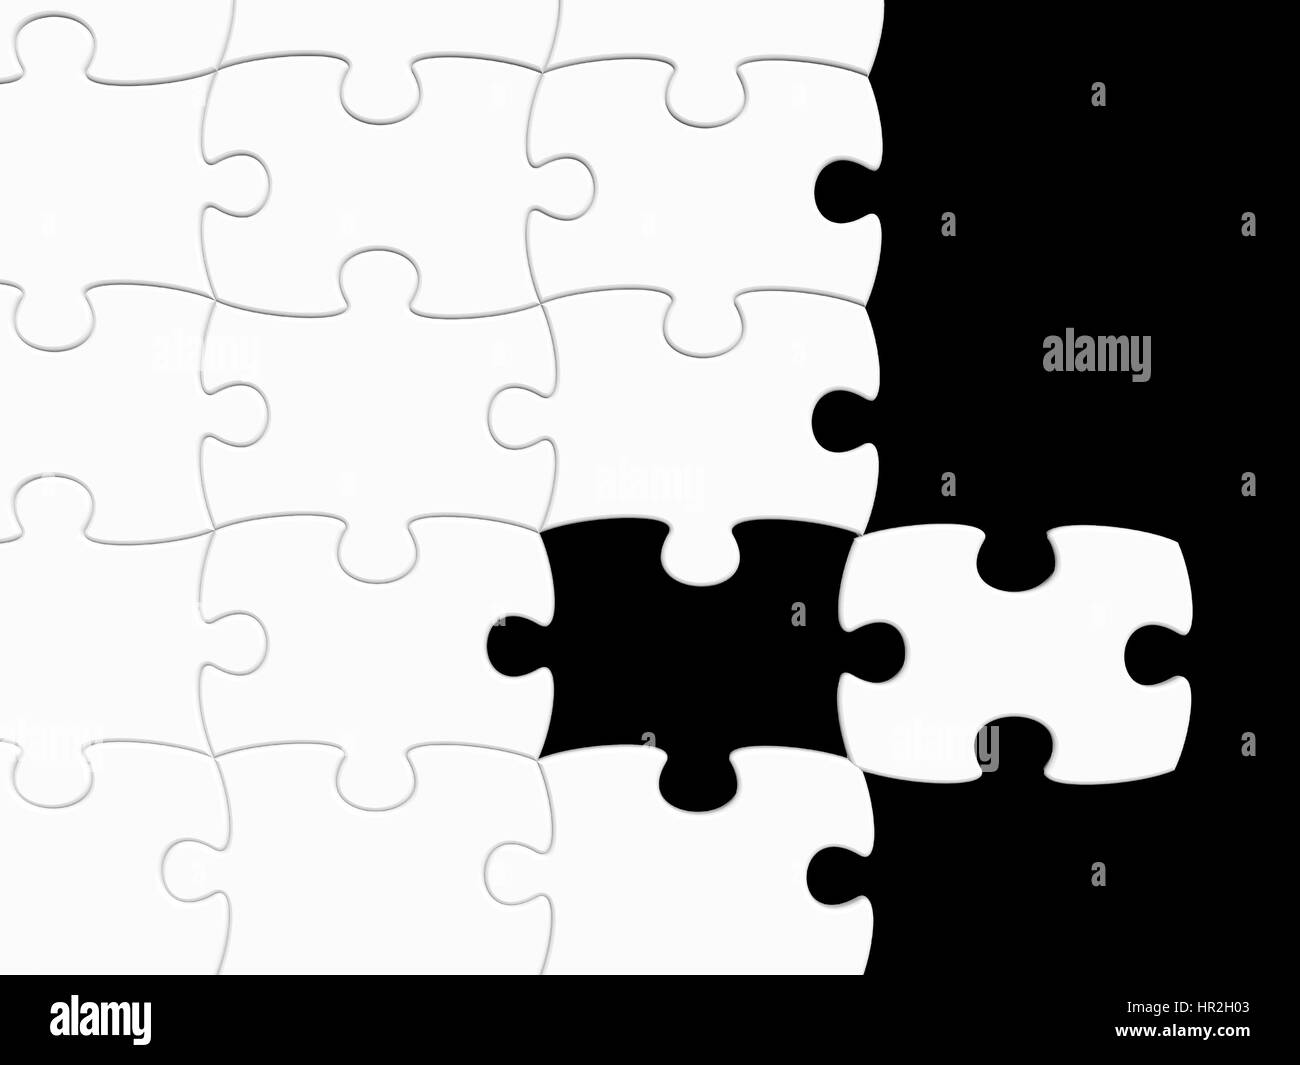 missing black puzzle piece stockfotos missing black. Black Bedroom Furniture Sets. Home Design Ideas